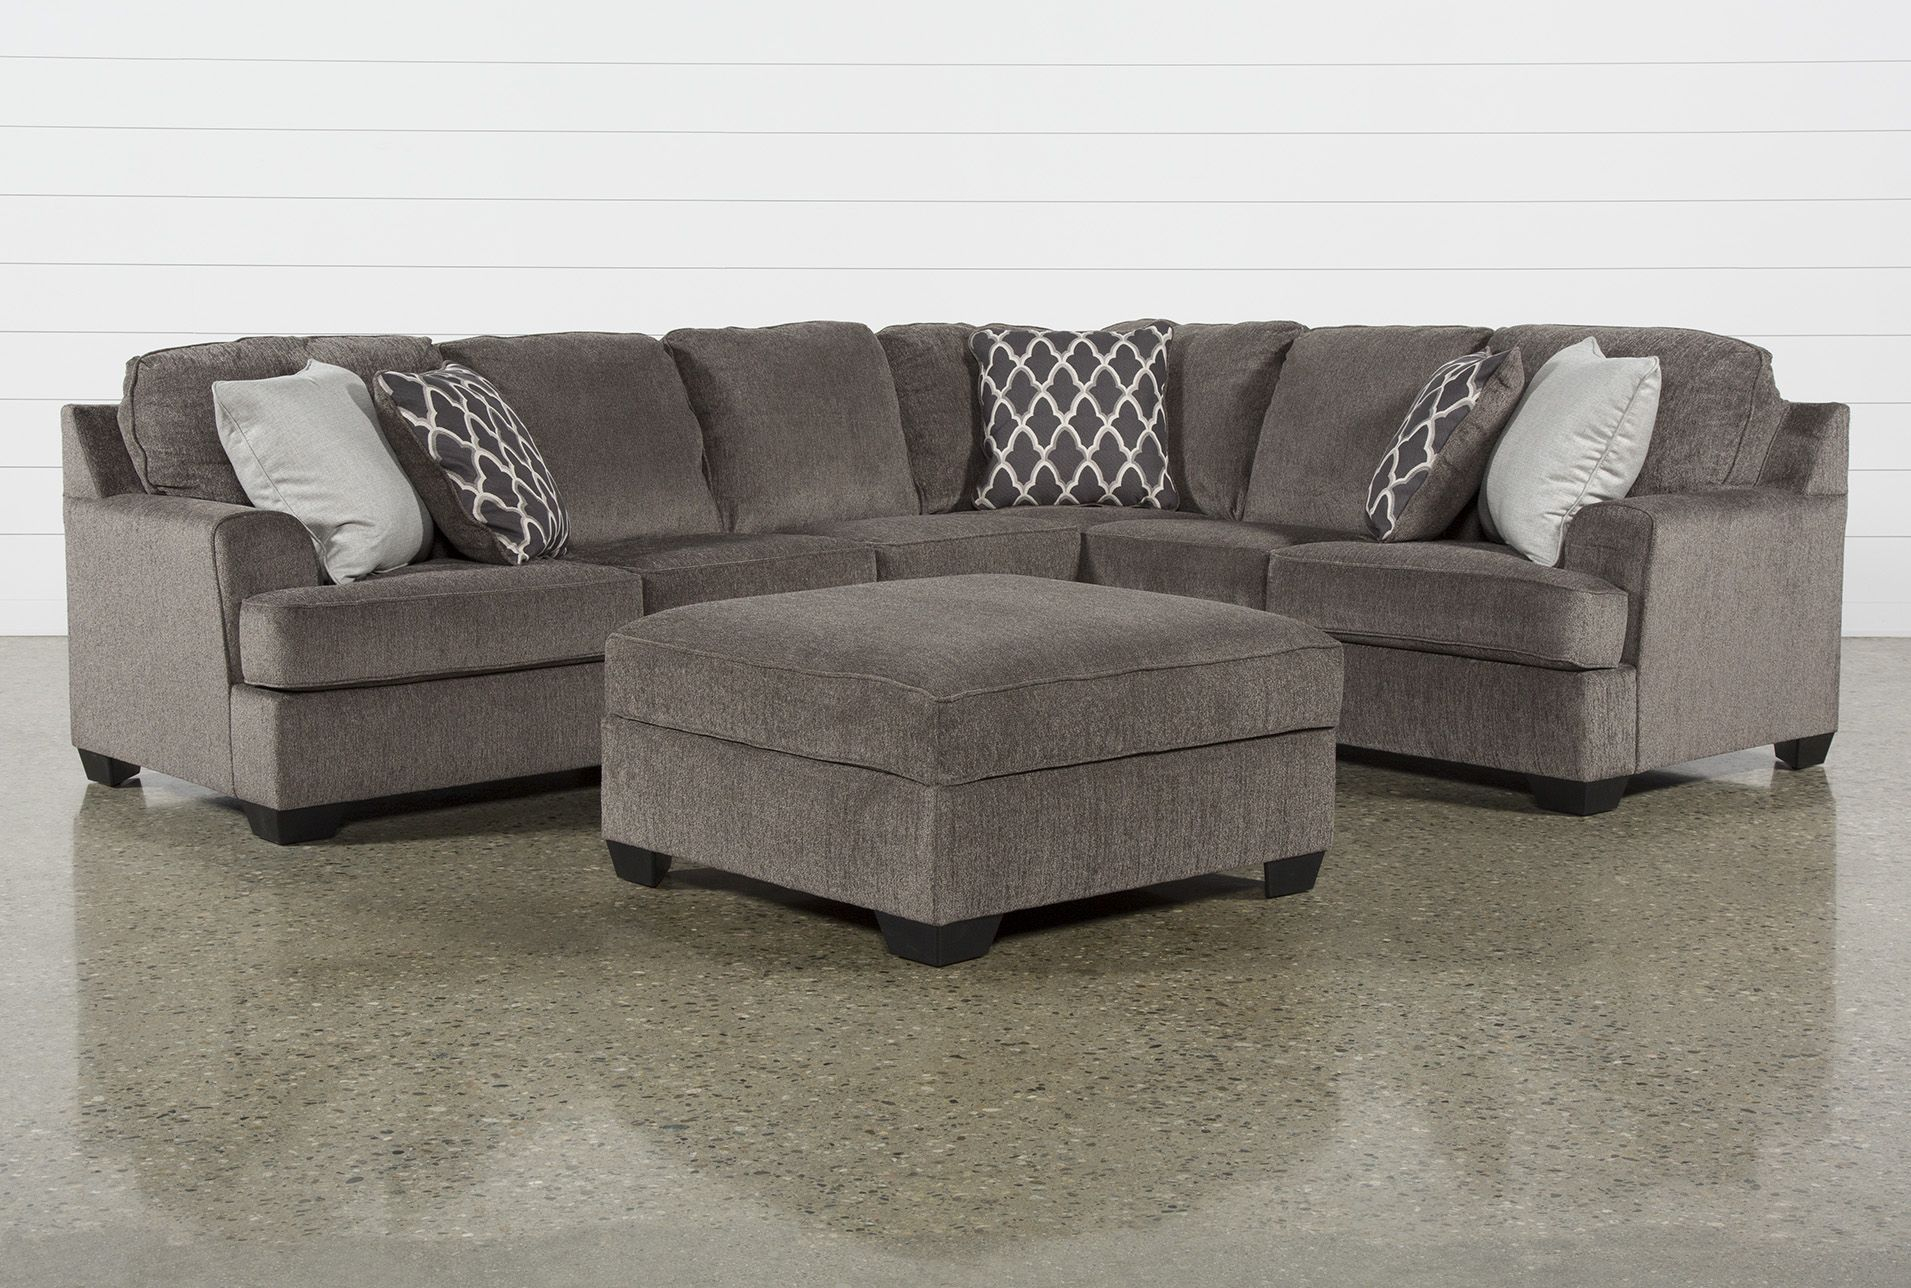 Devonwood 3 Piece Sectional With Left Arm Facing Loveseat And Ottoman In 2020 3 Piece Sectional Sofa 2 Piece Sectional Sofa Grey Sectional Couch #pasadena #gray #living #room #sectional